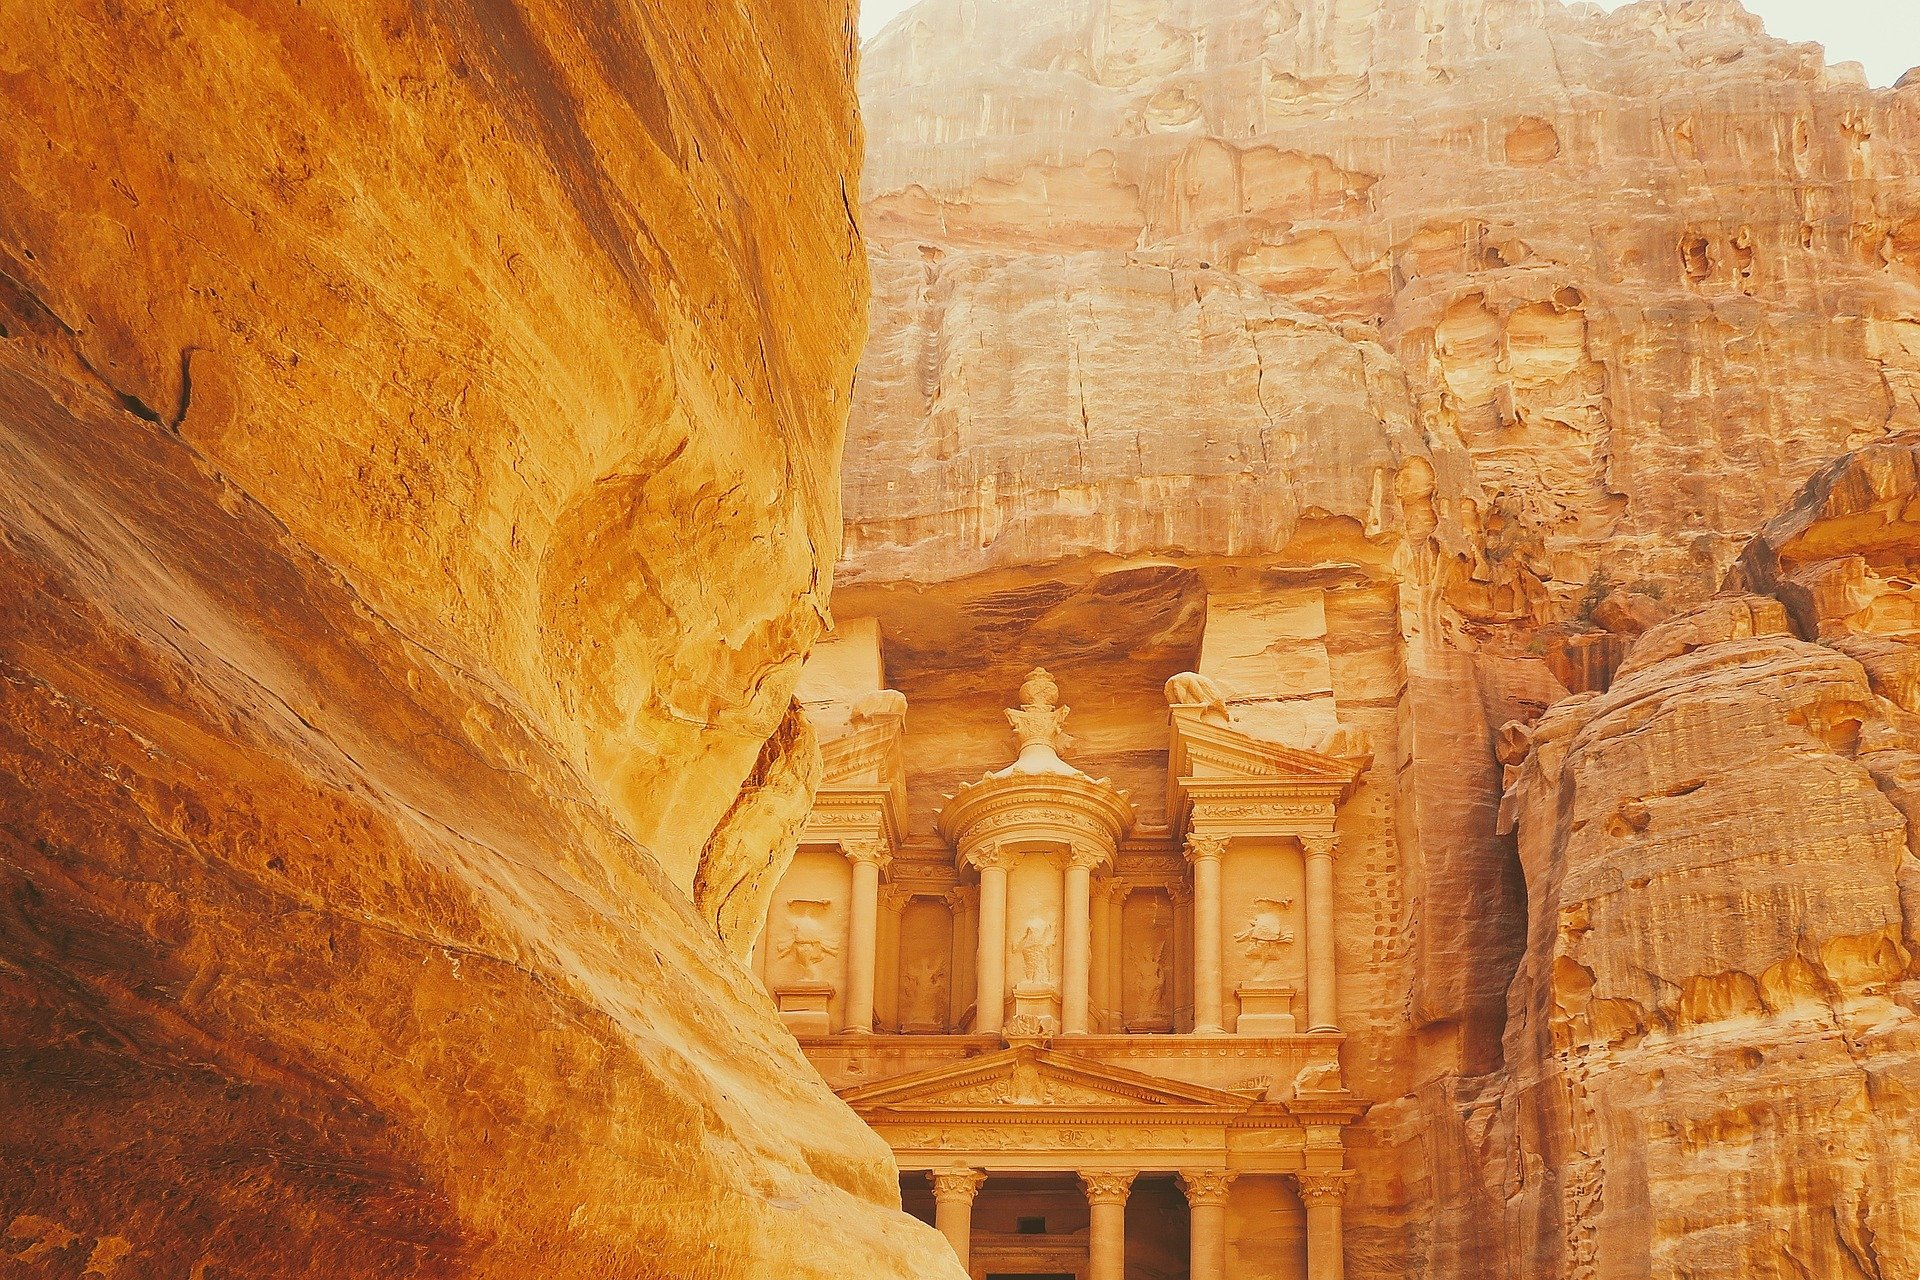 Petra Jordan - Entrance to the Treasury from the Siq